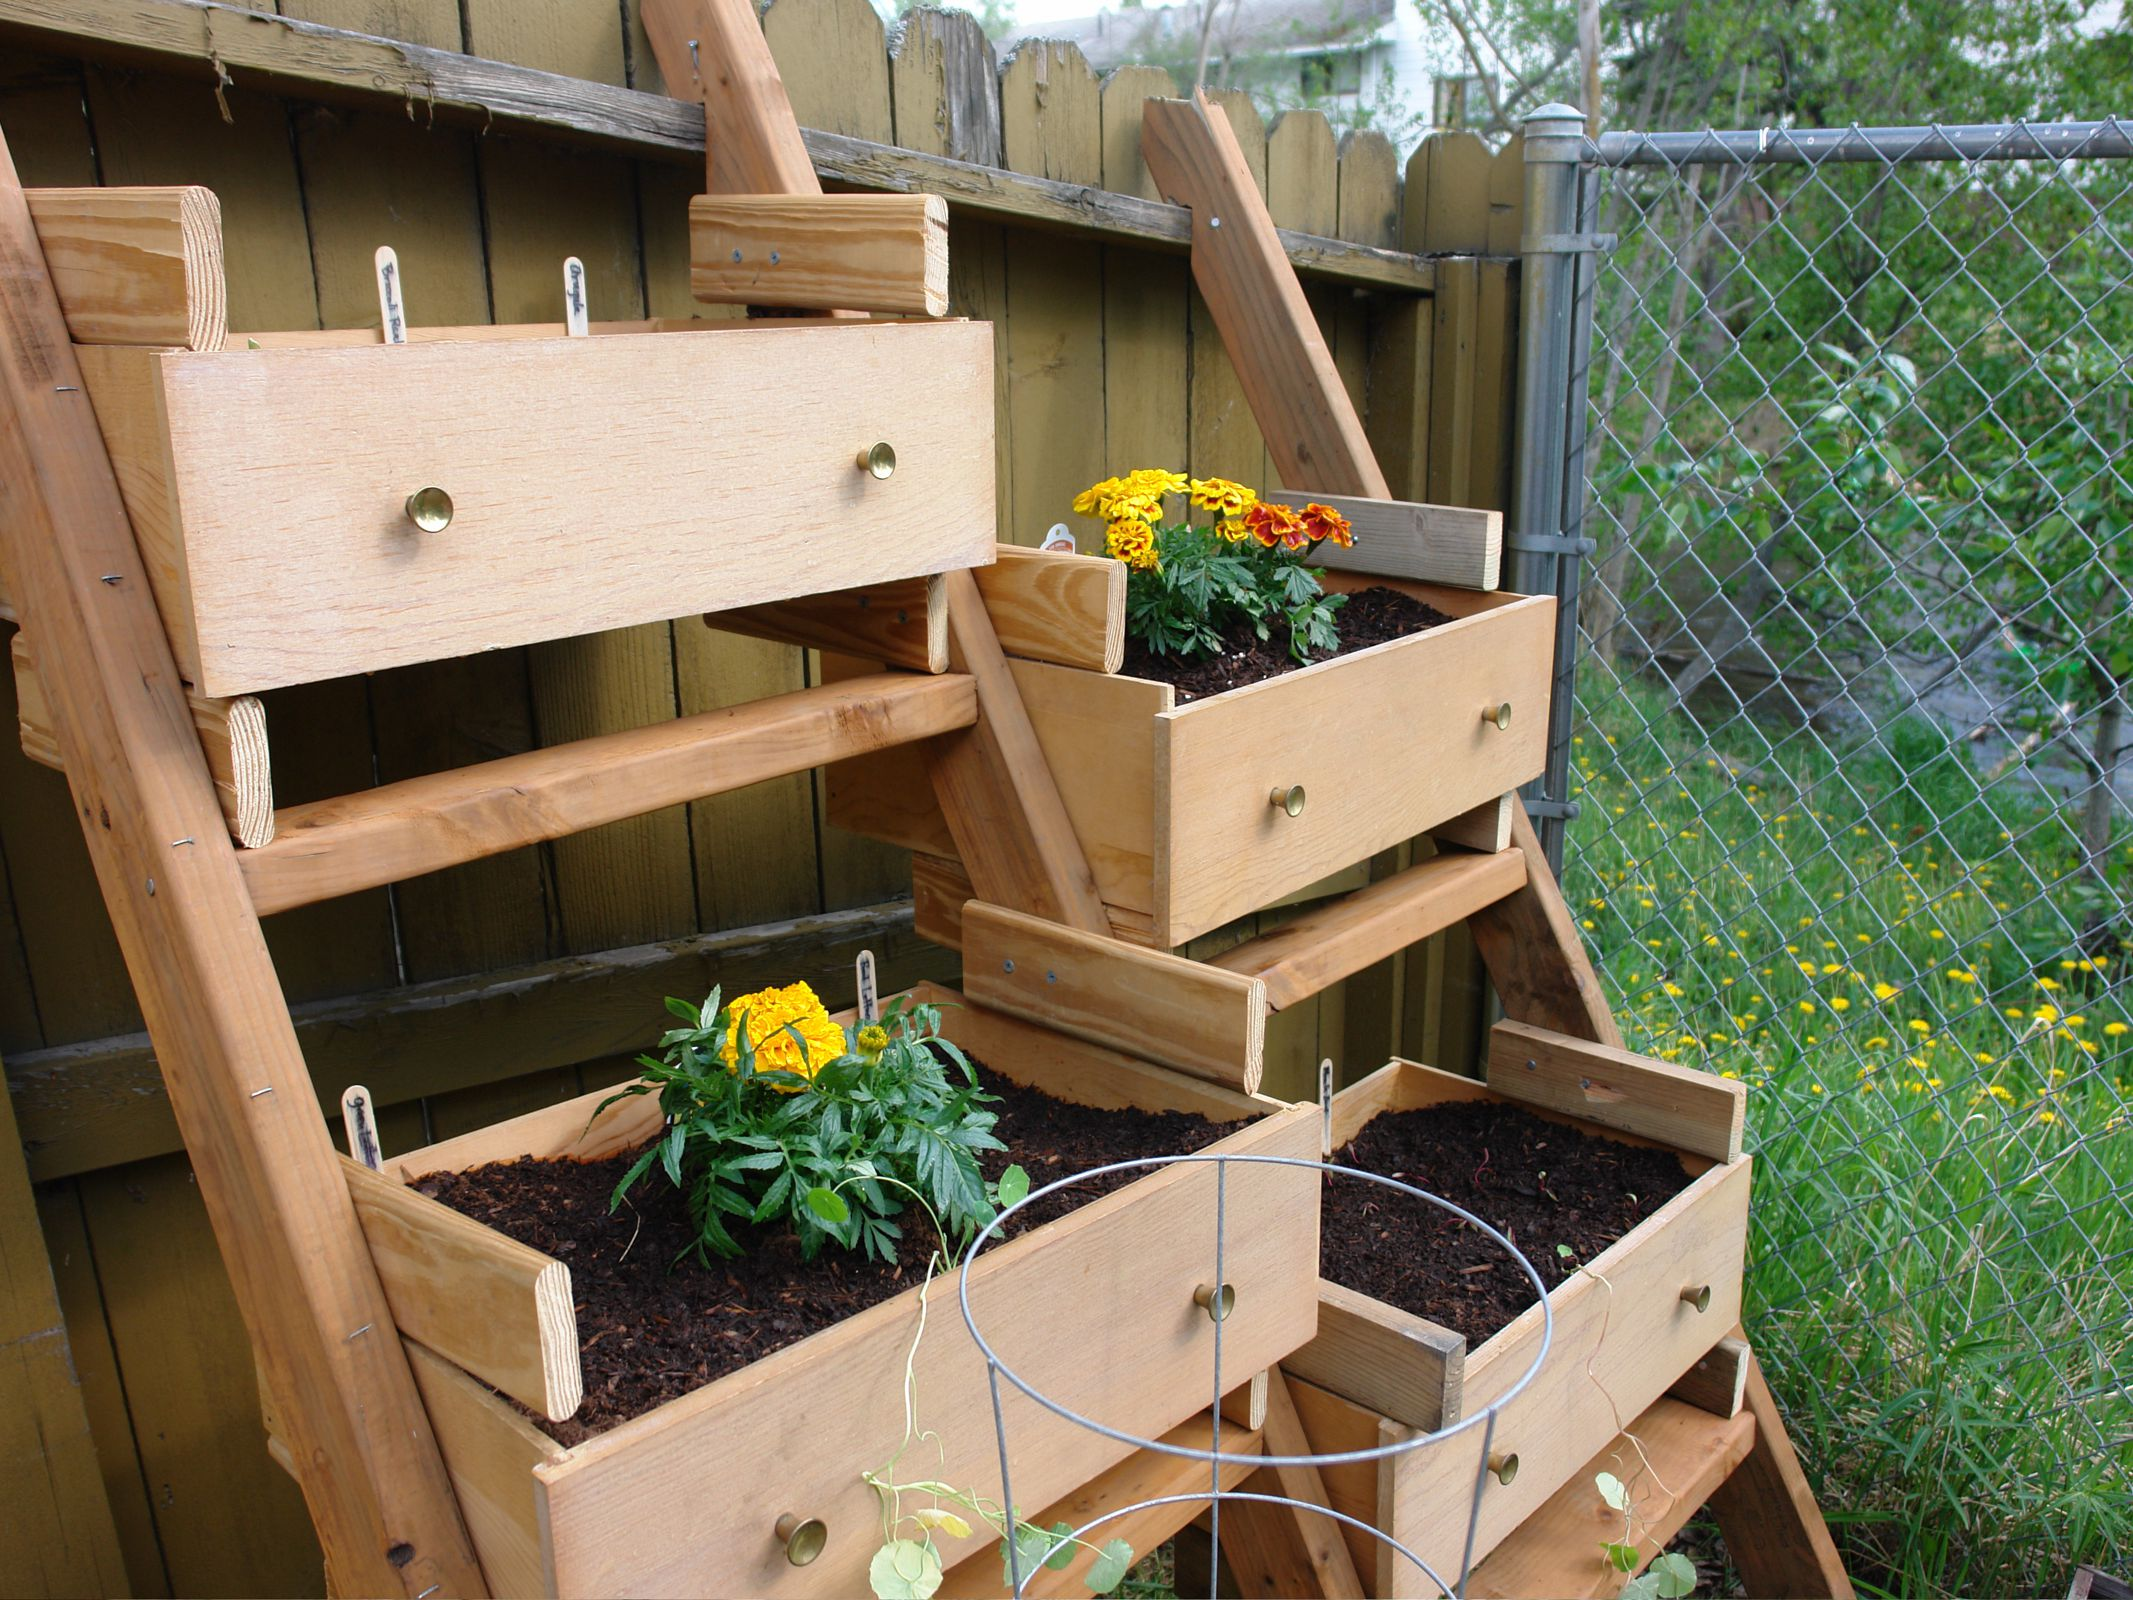 10 Creative Vegetable Garden Ideas